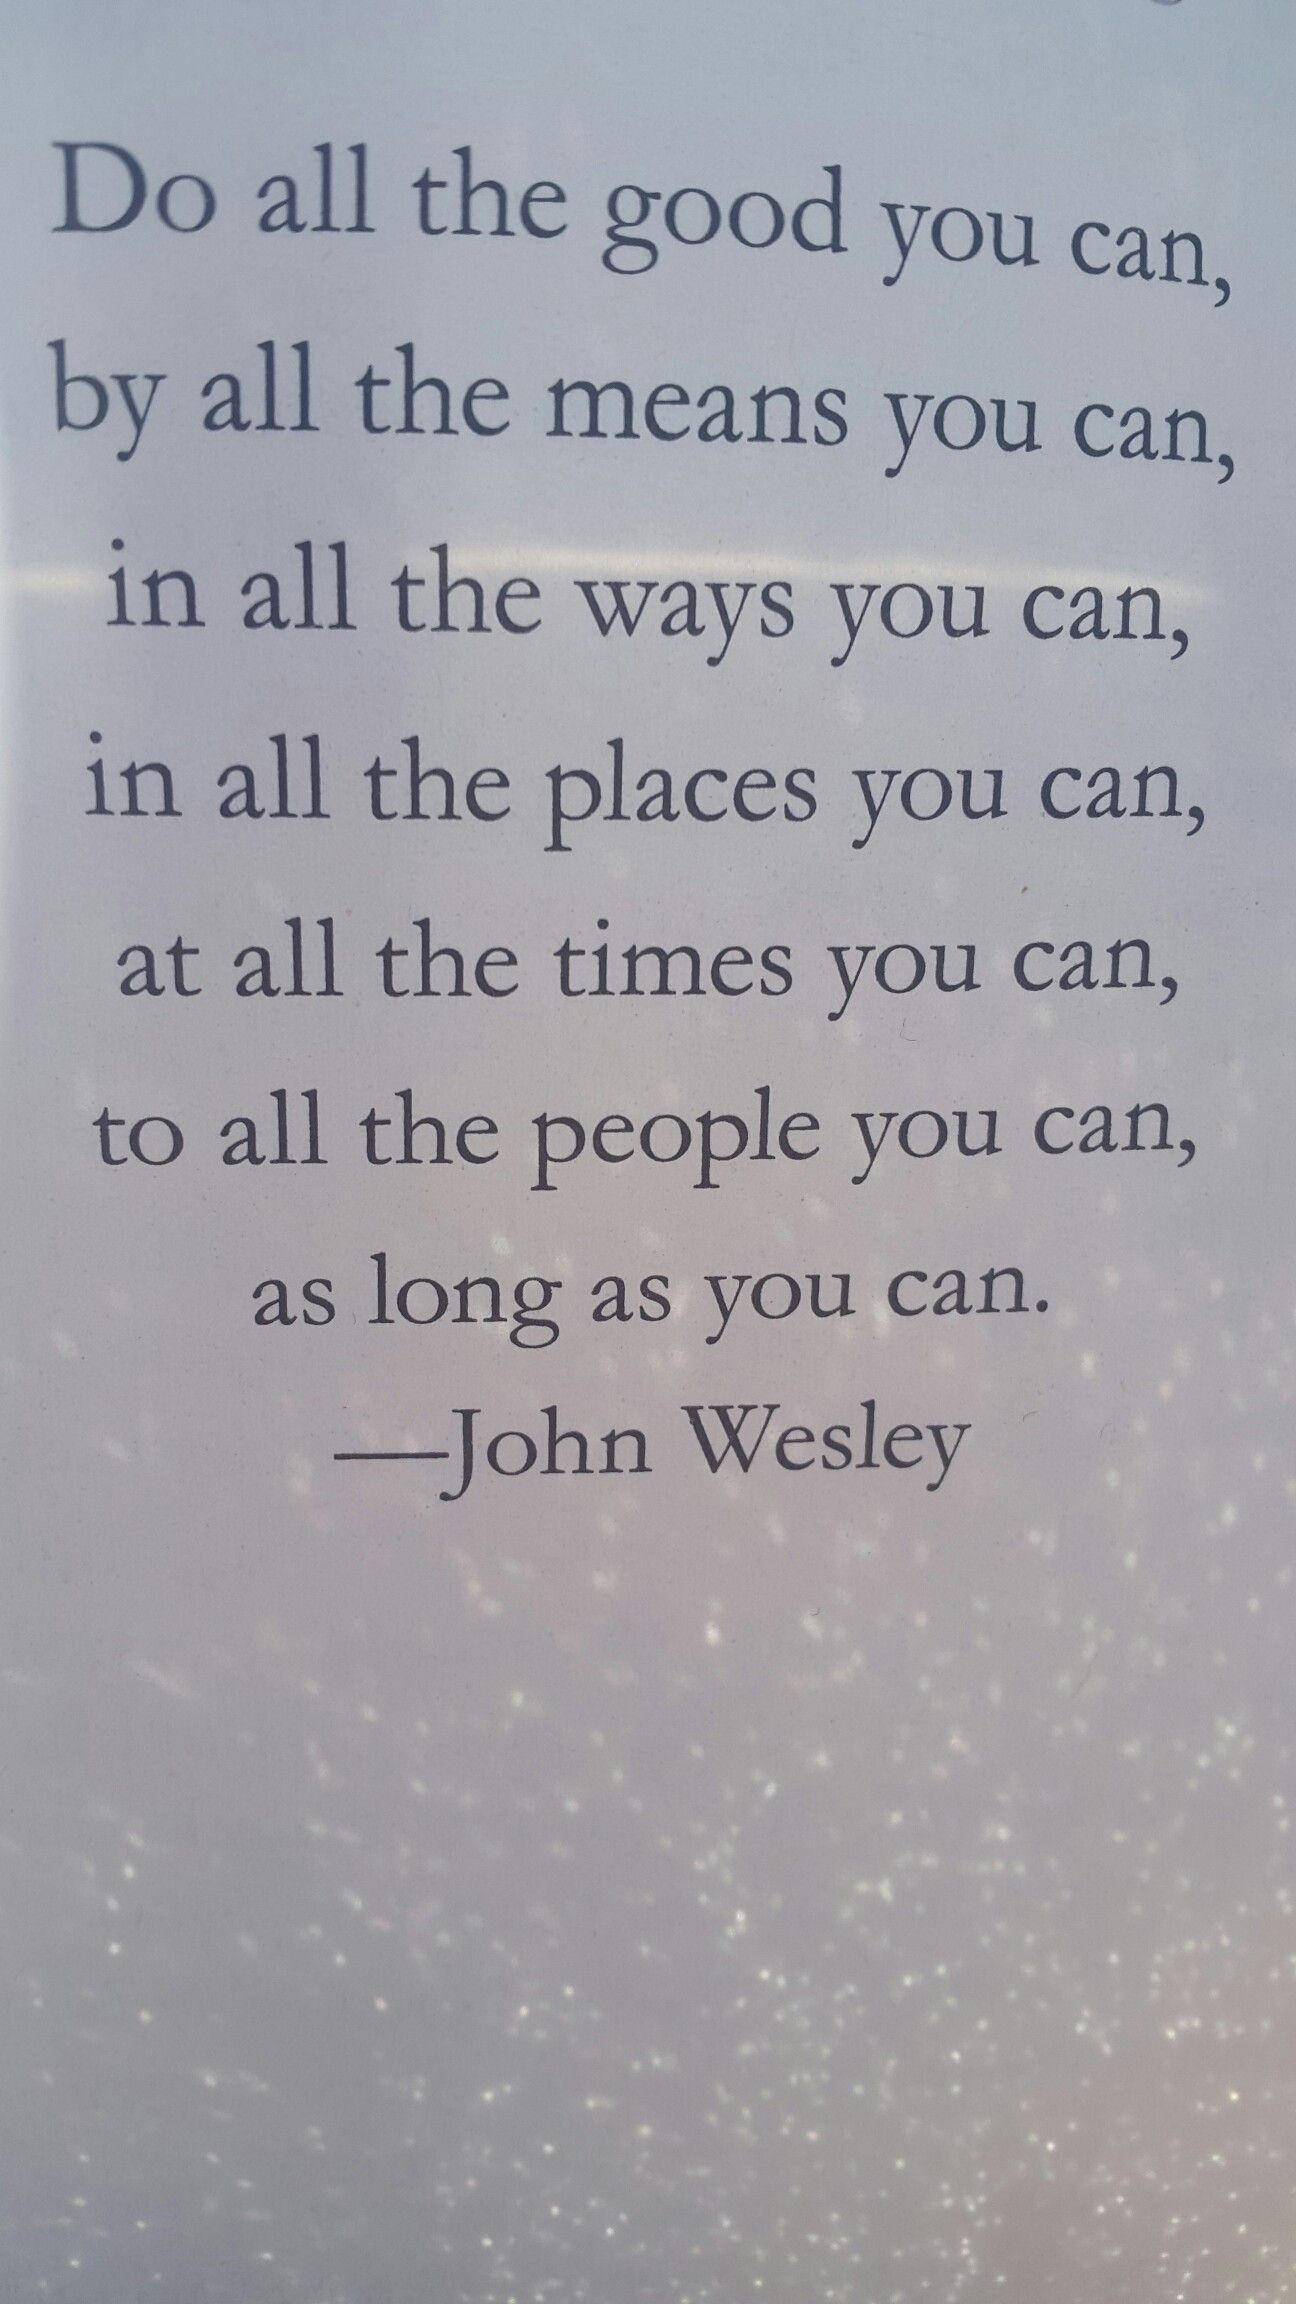 Do All The Good You Can John Wesley John Wesley Quotes Good